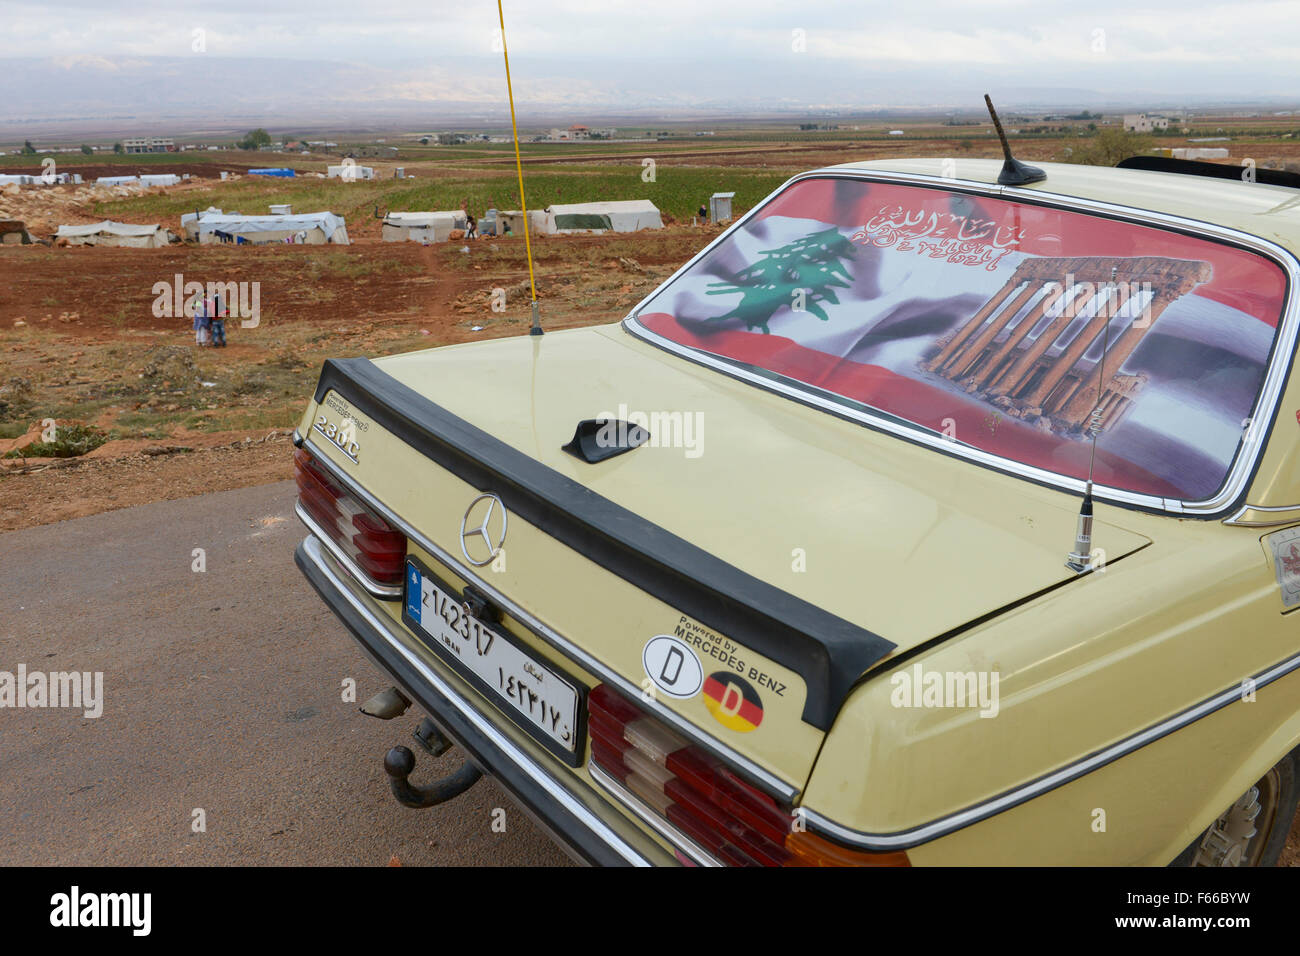 LEBANON Beqaa valley, Deir el Ahmad, camp for syrian refugees, old german Mercedes Benz car with german country - Stock Image